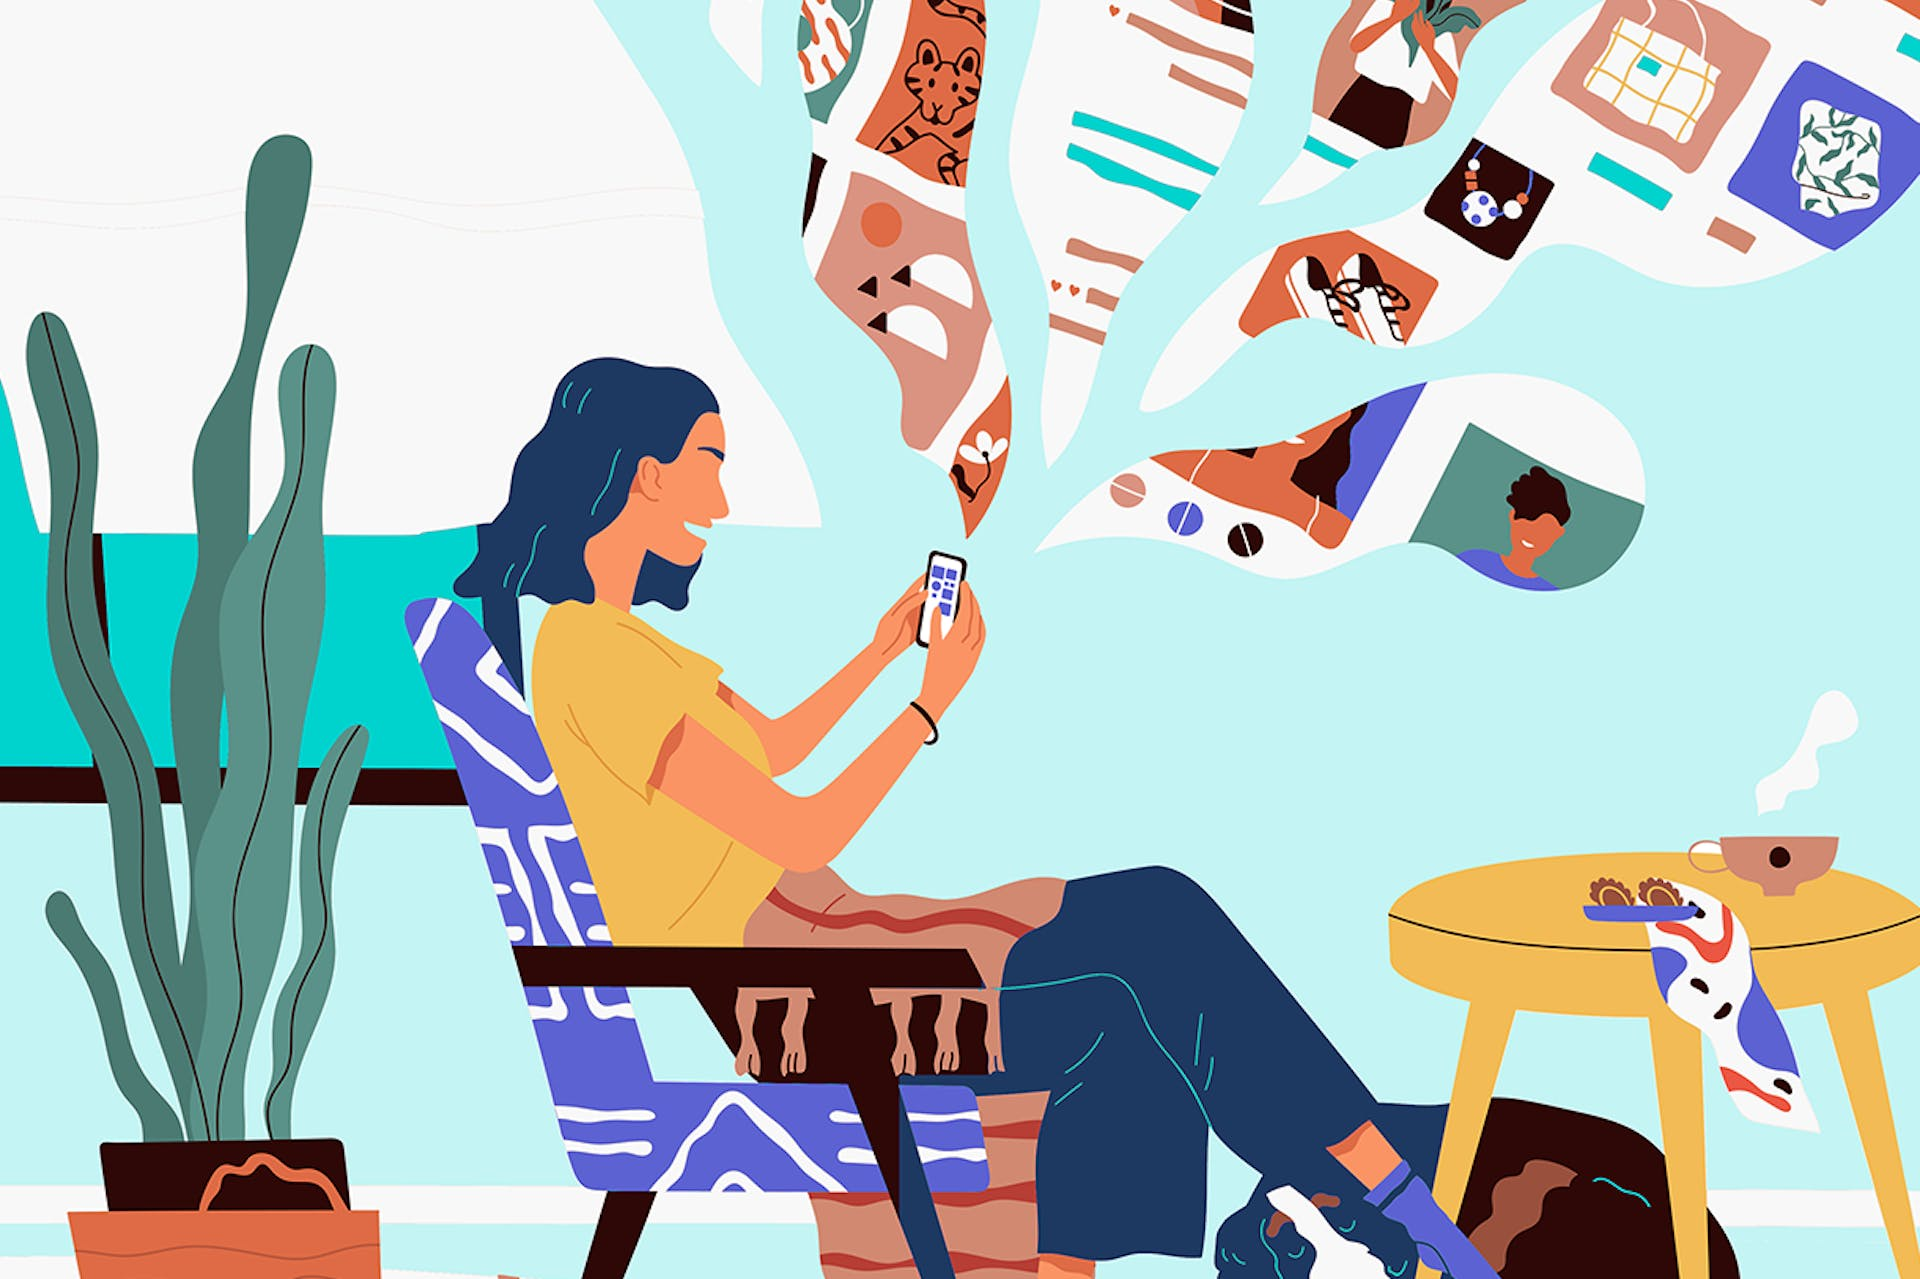 Comic image of a person sitting on her chair scrolling through her phone